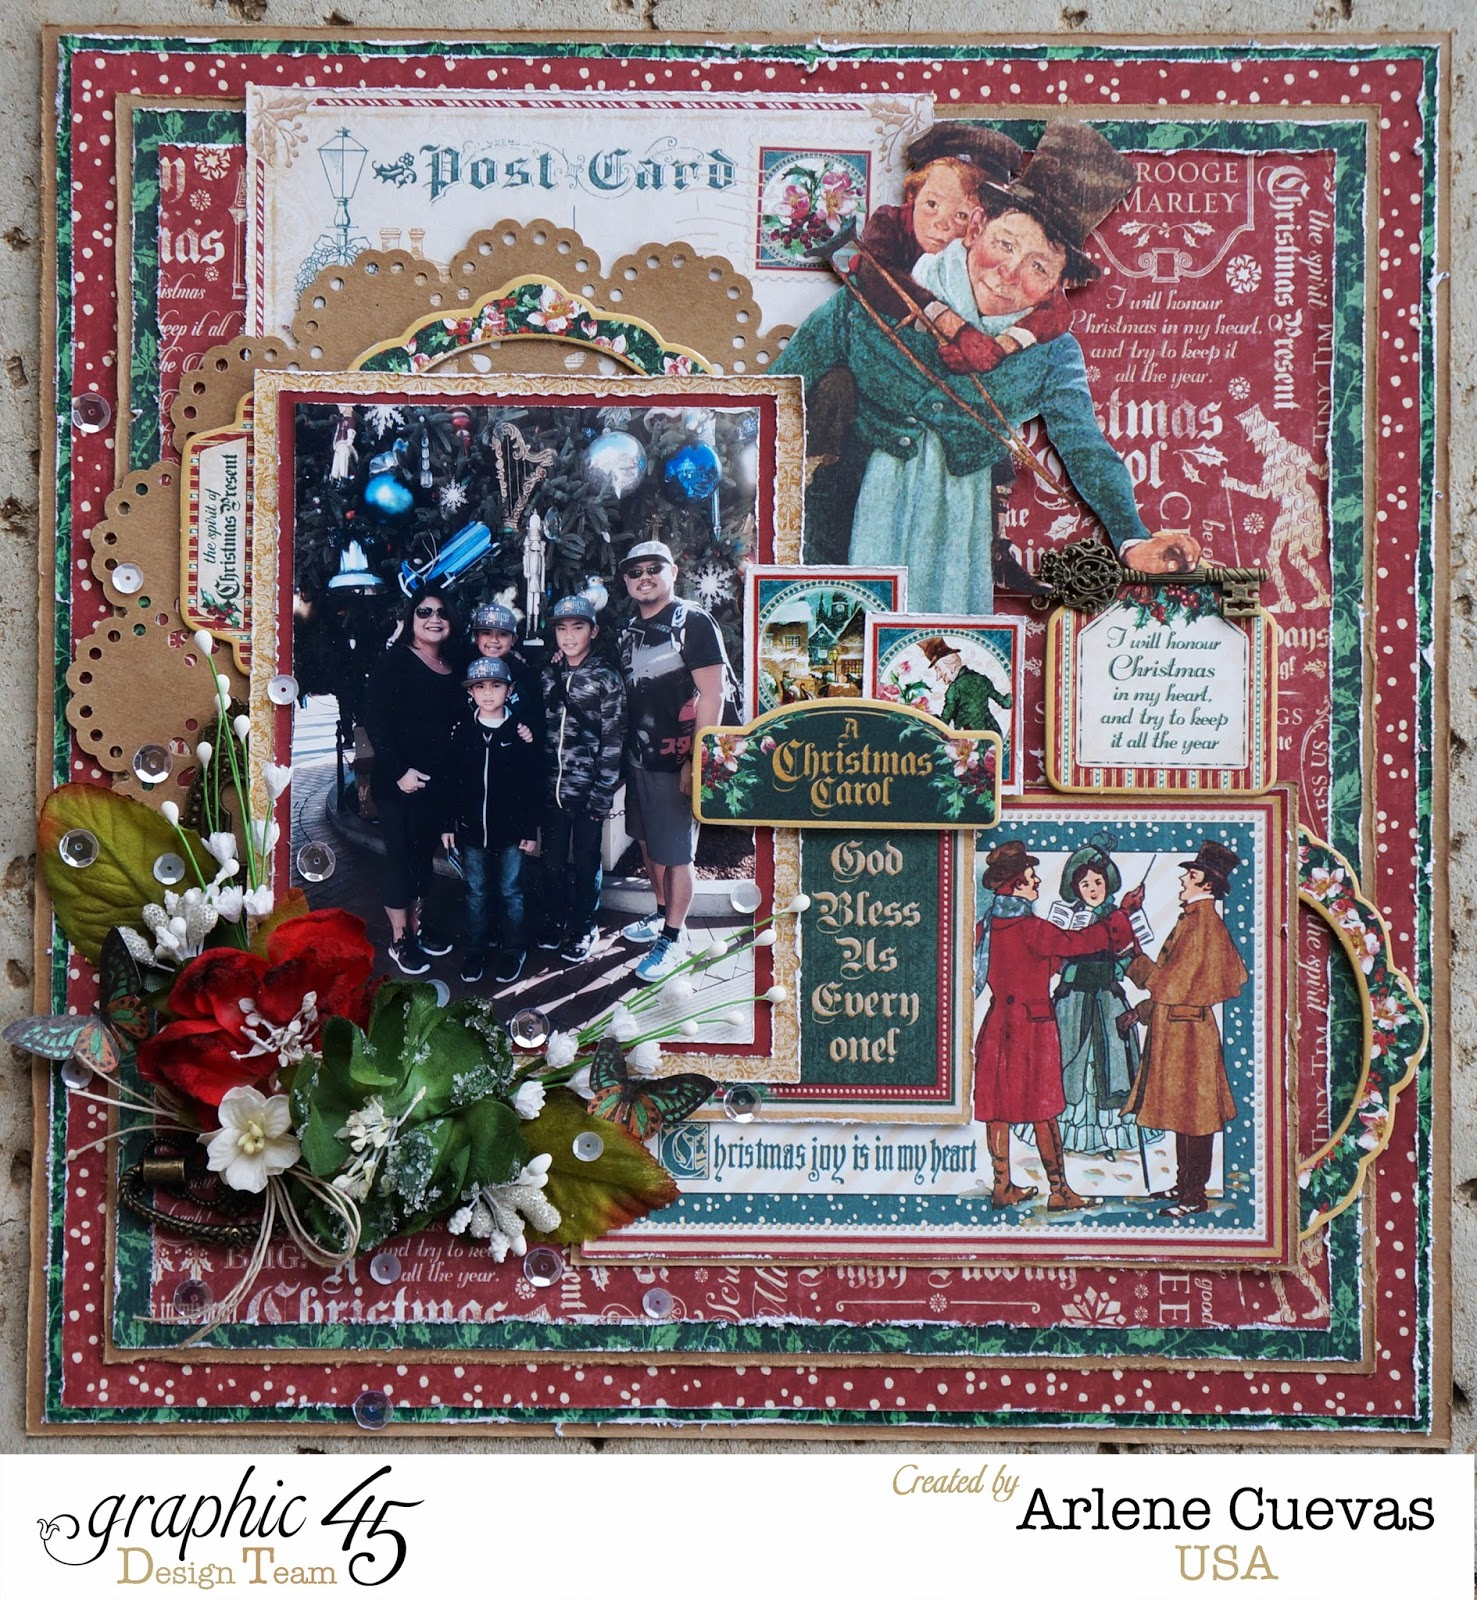 1000 Images About A Christmas Carol On Pinterest: Butterfly Kisses & Paper Pretties: 12x12 Scrapbook Layout